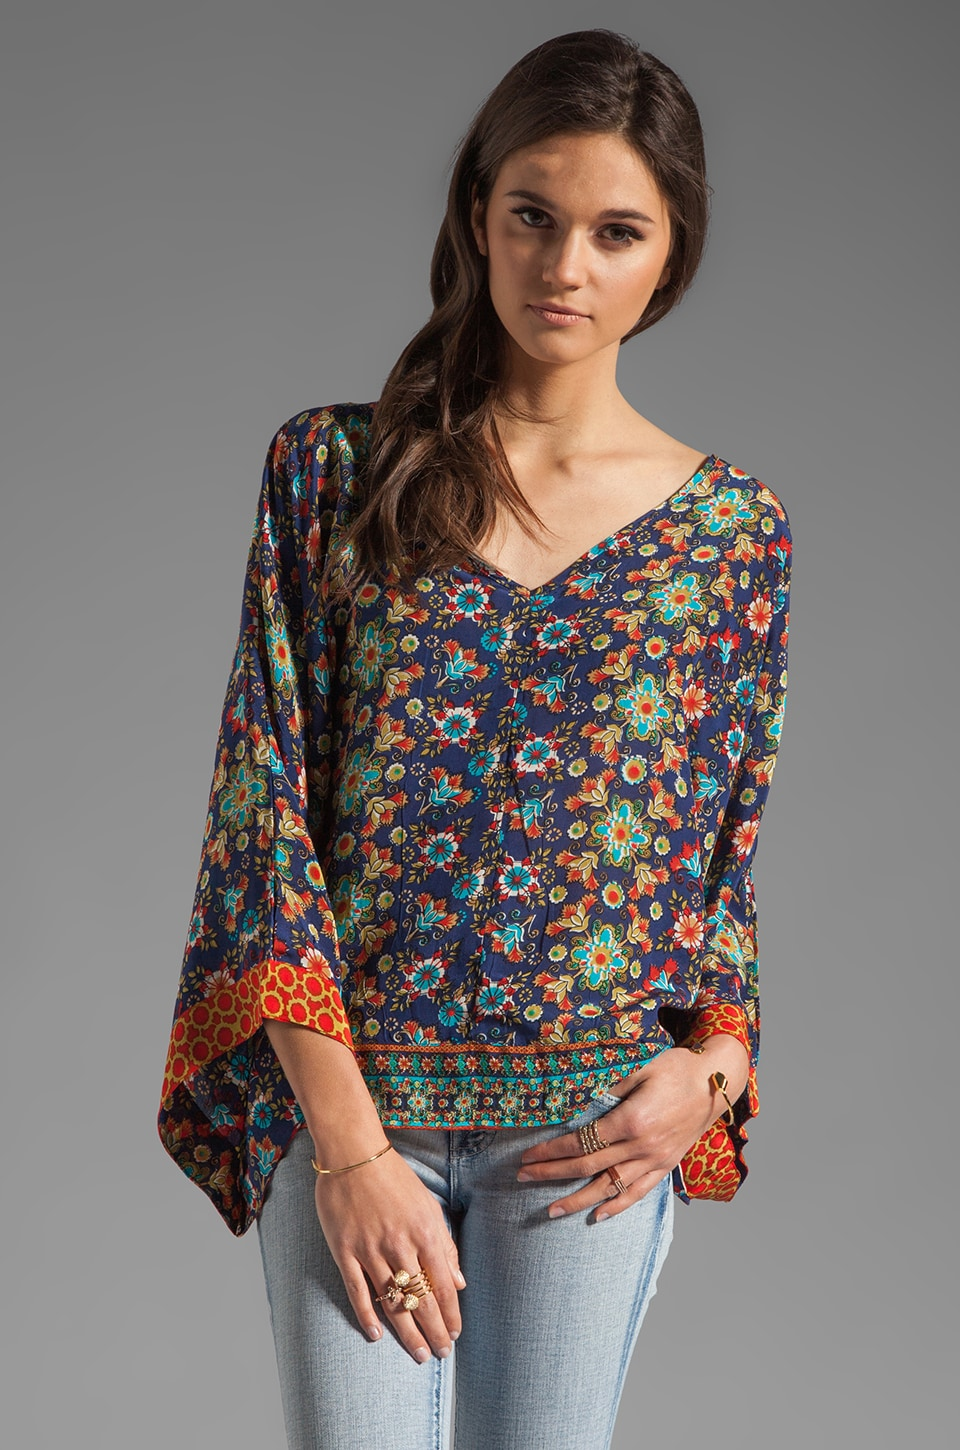 Tolani Samantha Blouse in Navy Floral